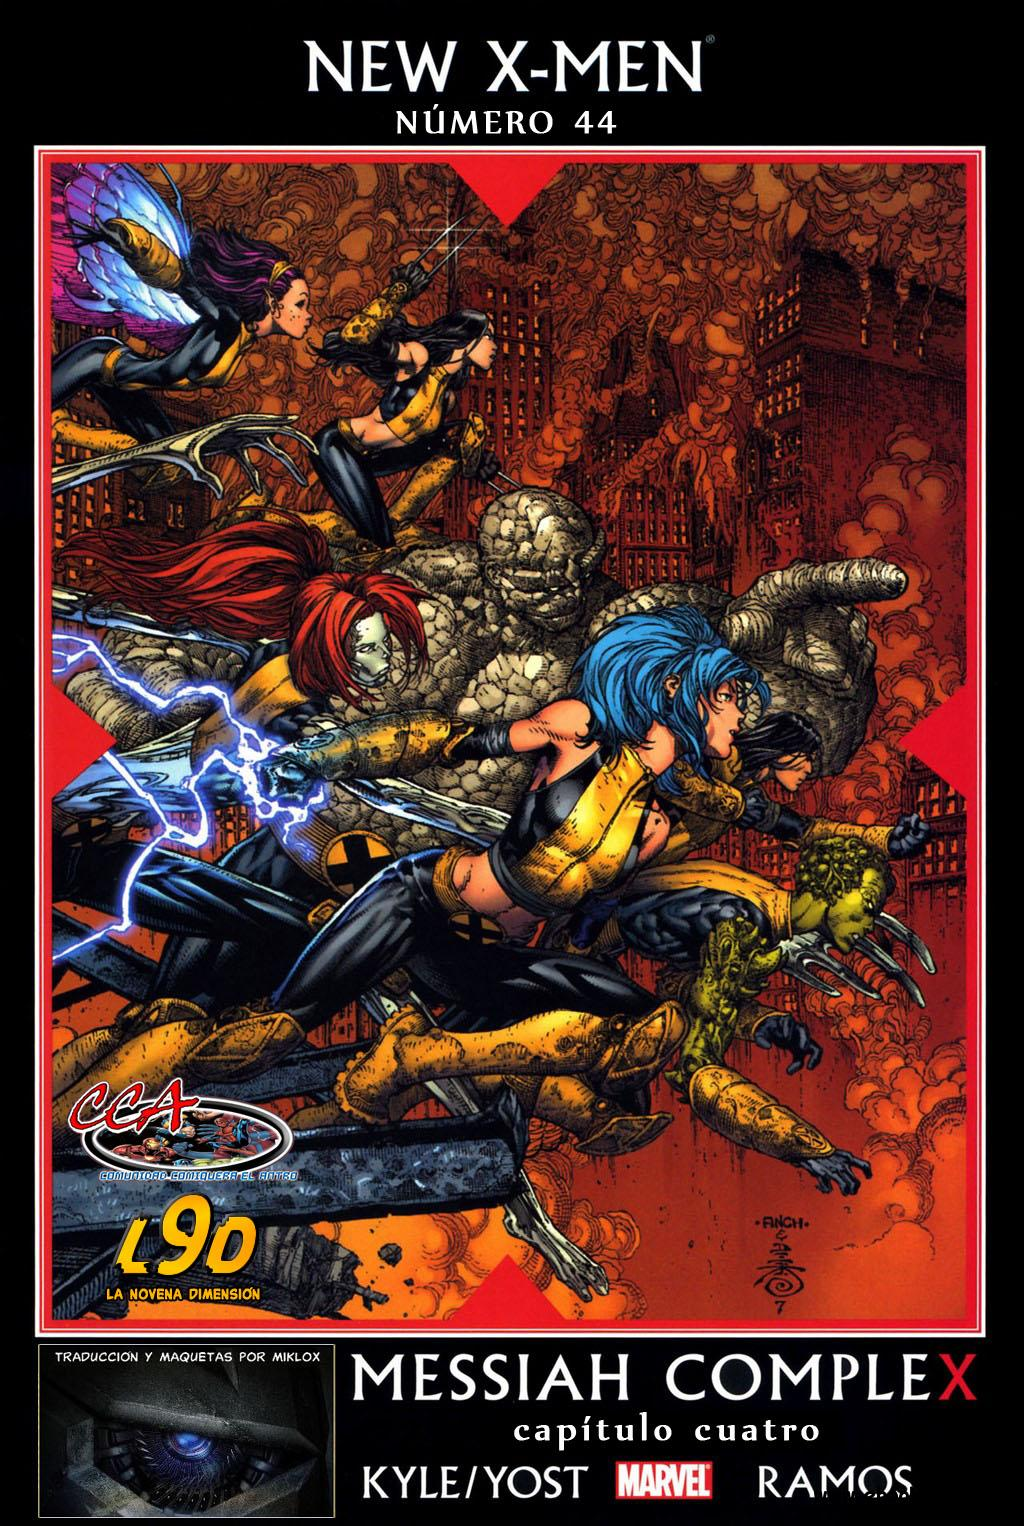 New X-Men 044 free download